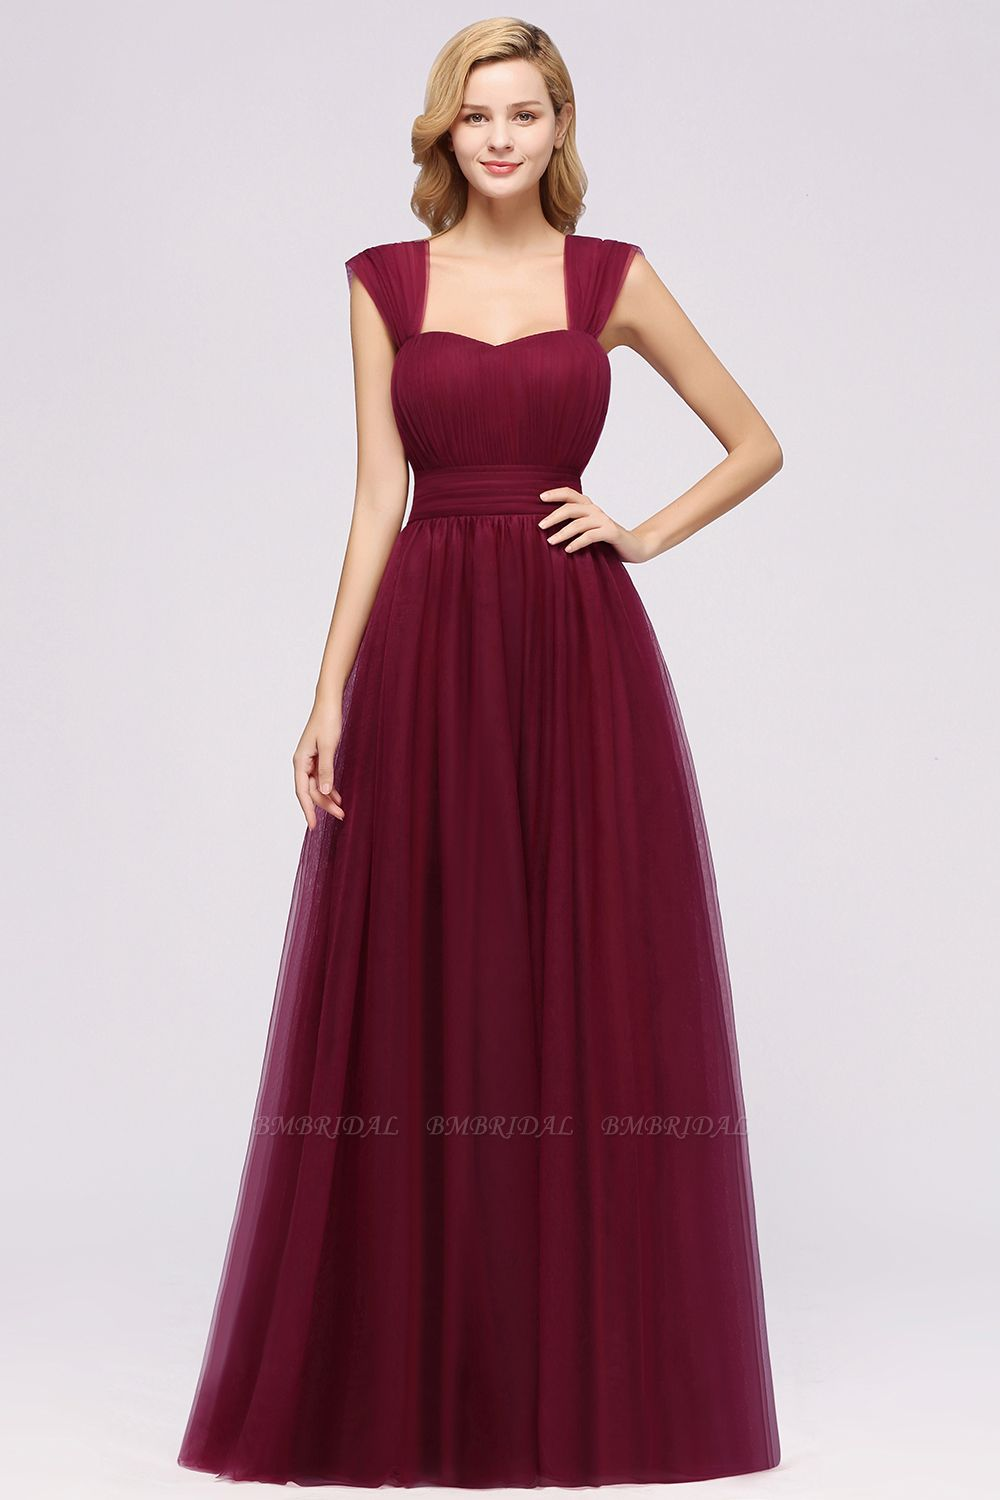 Gorgeous Sweetheart Straps Ruffle Burgundy Bridesmaid Dresses Online